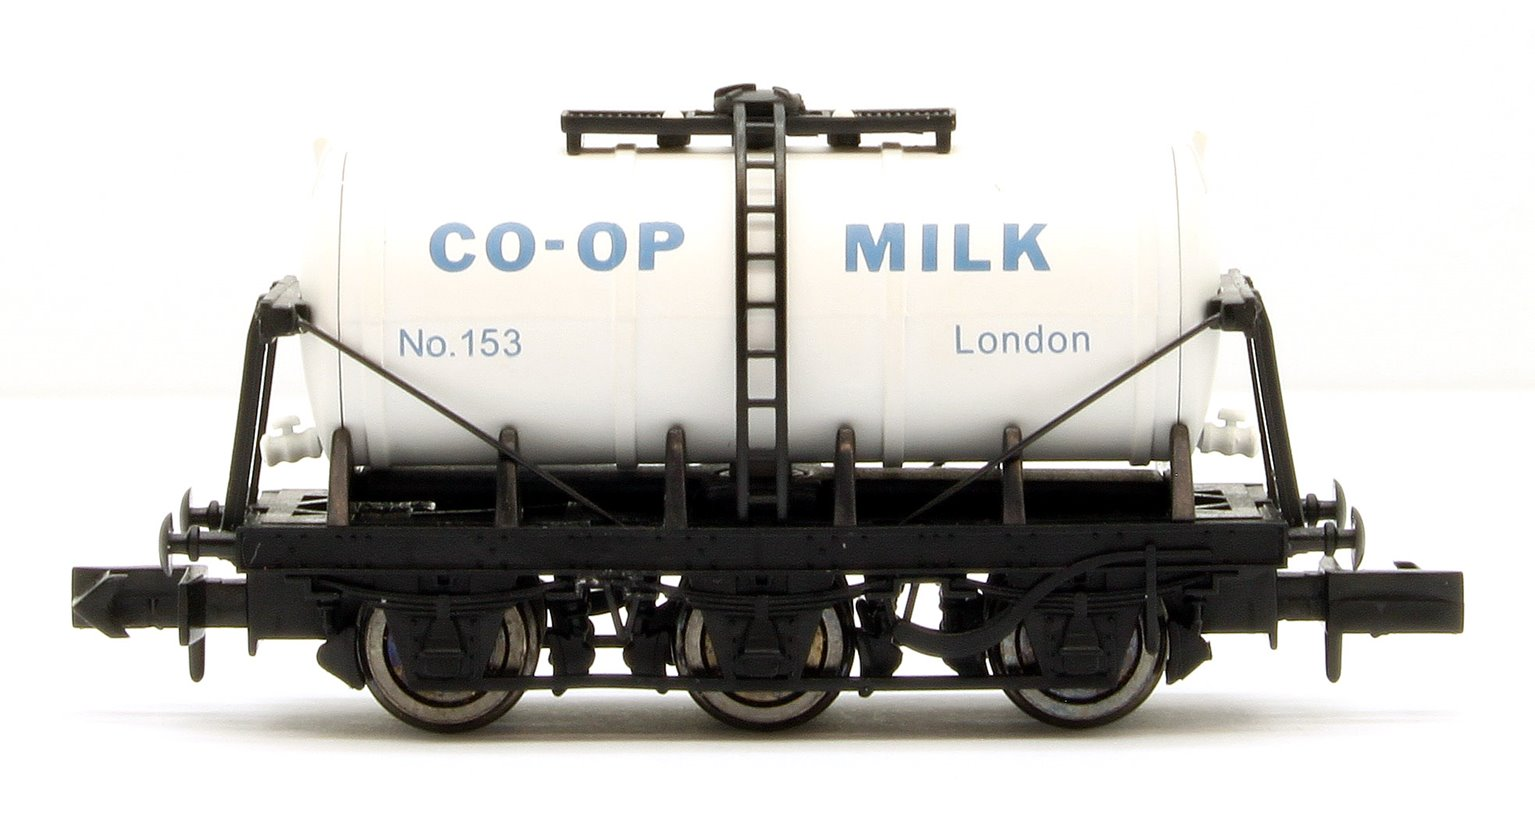 6 Wheel Milk Tanker Co-op London